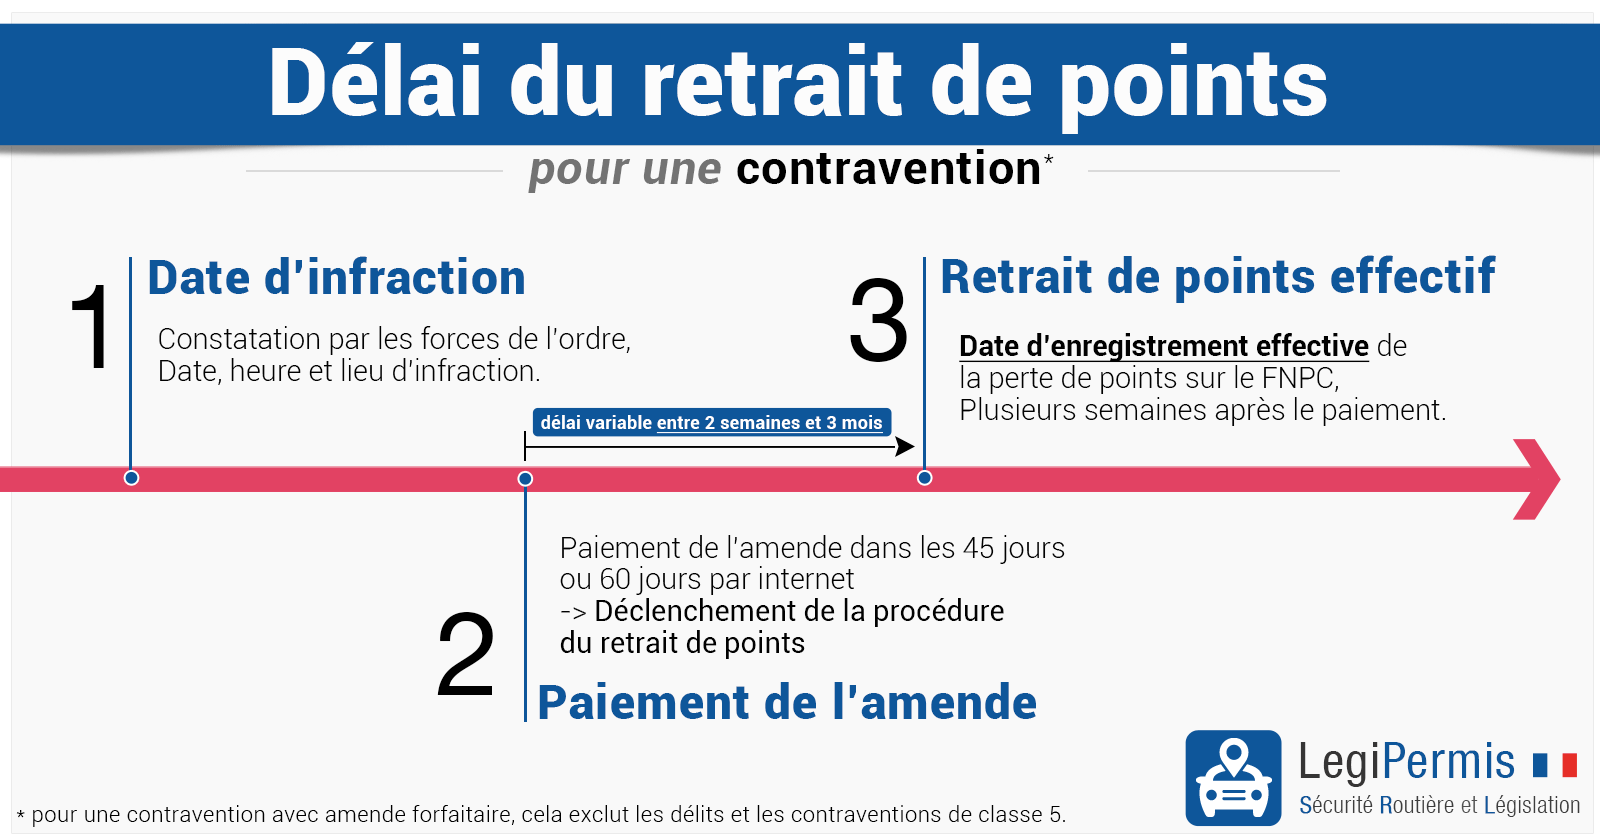 Retrait de points, délai et date effective